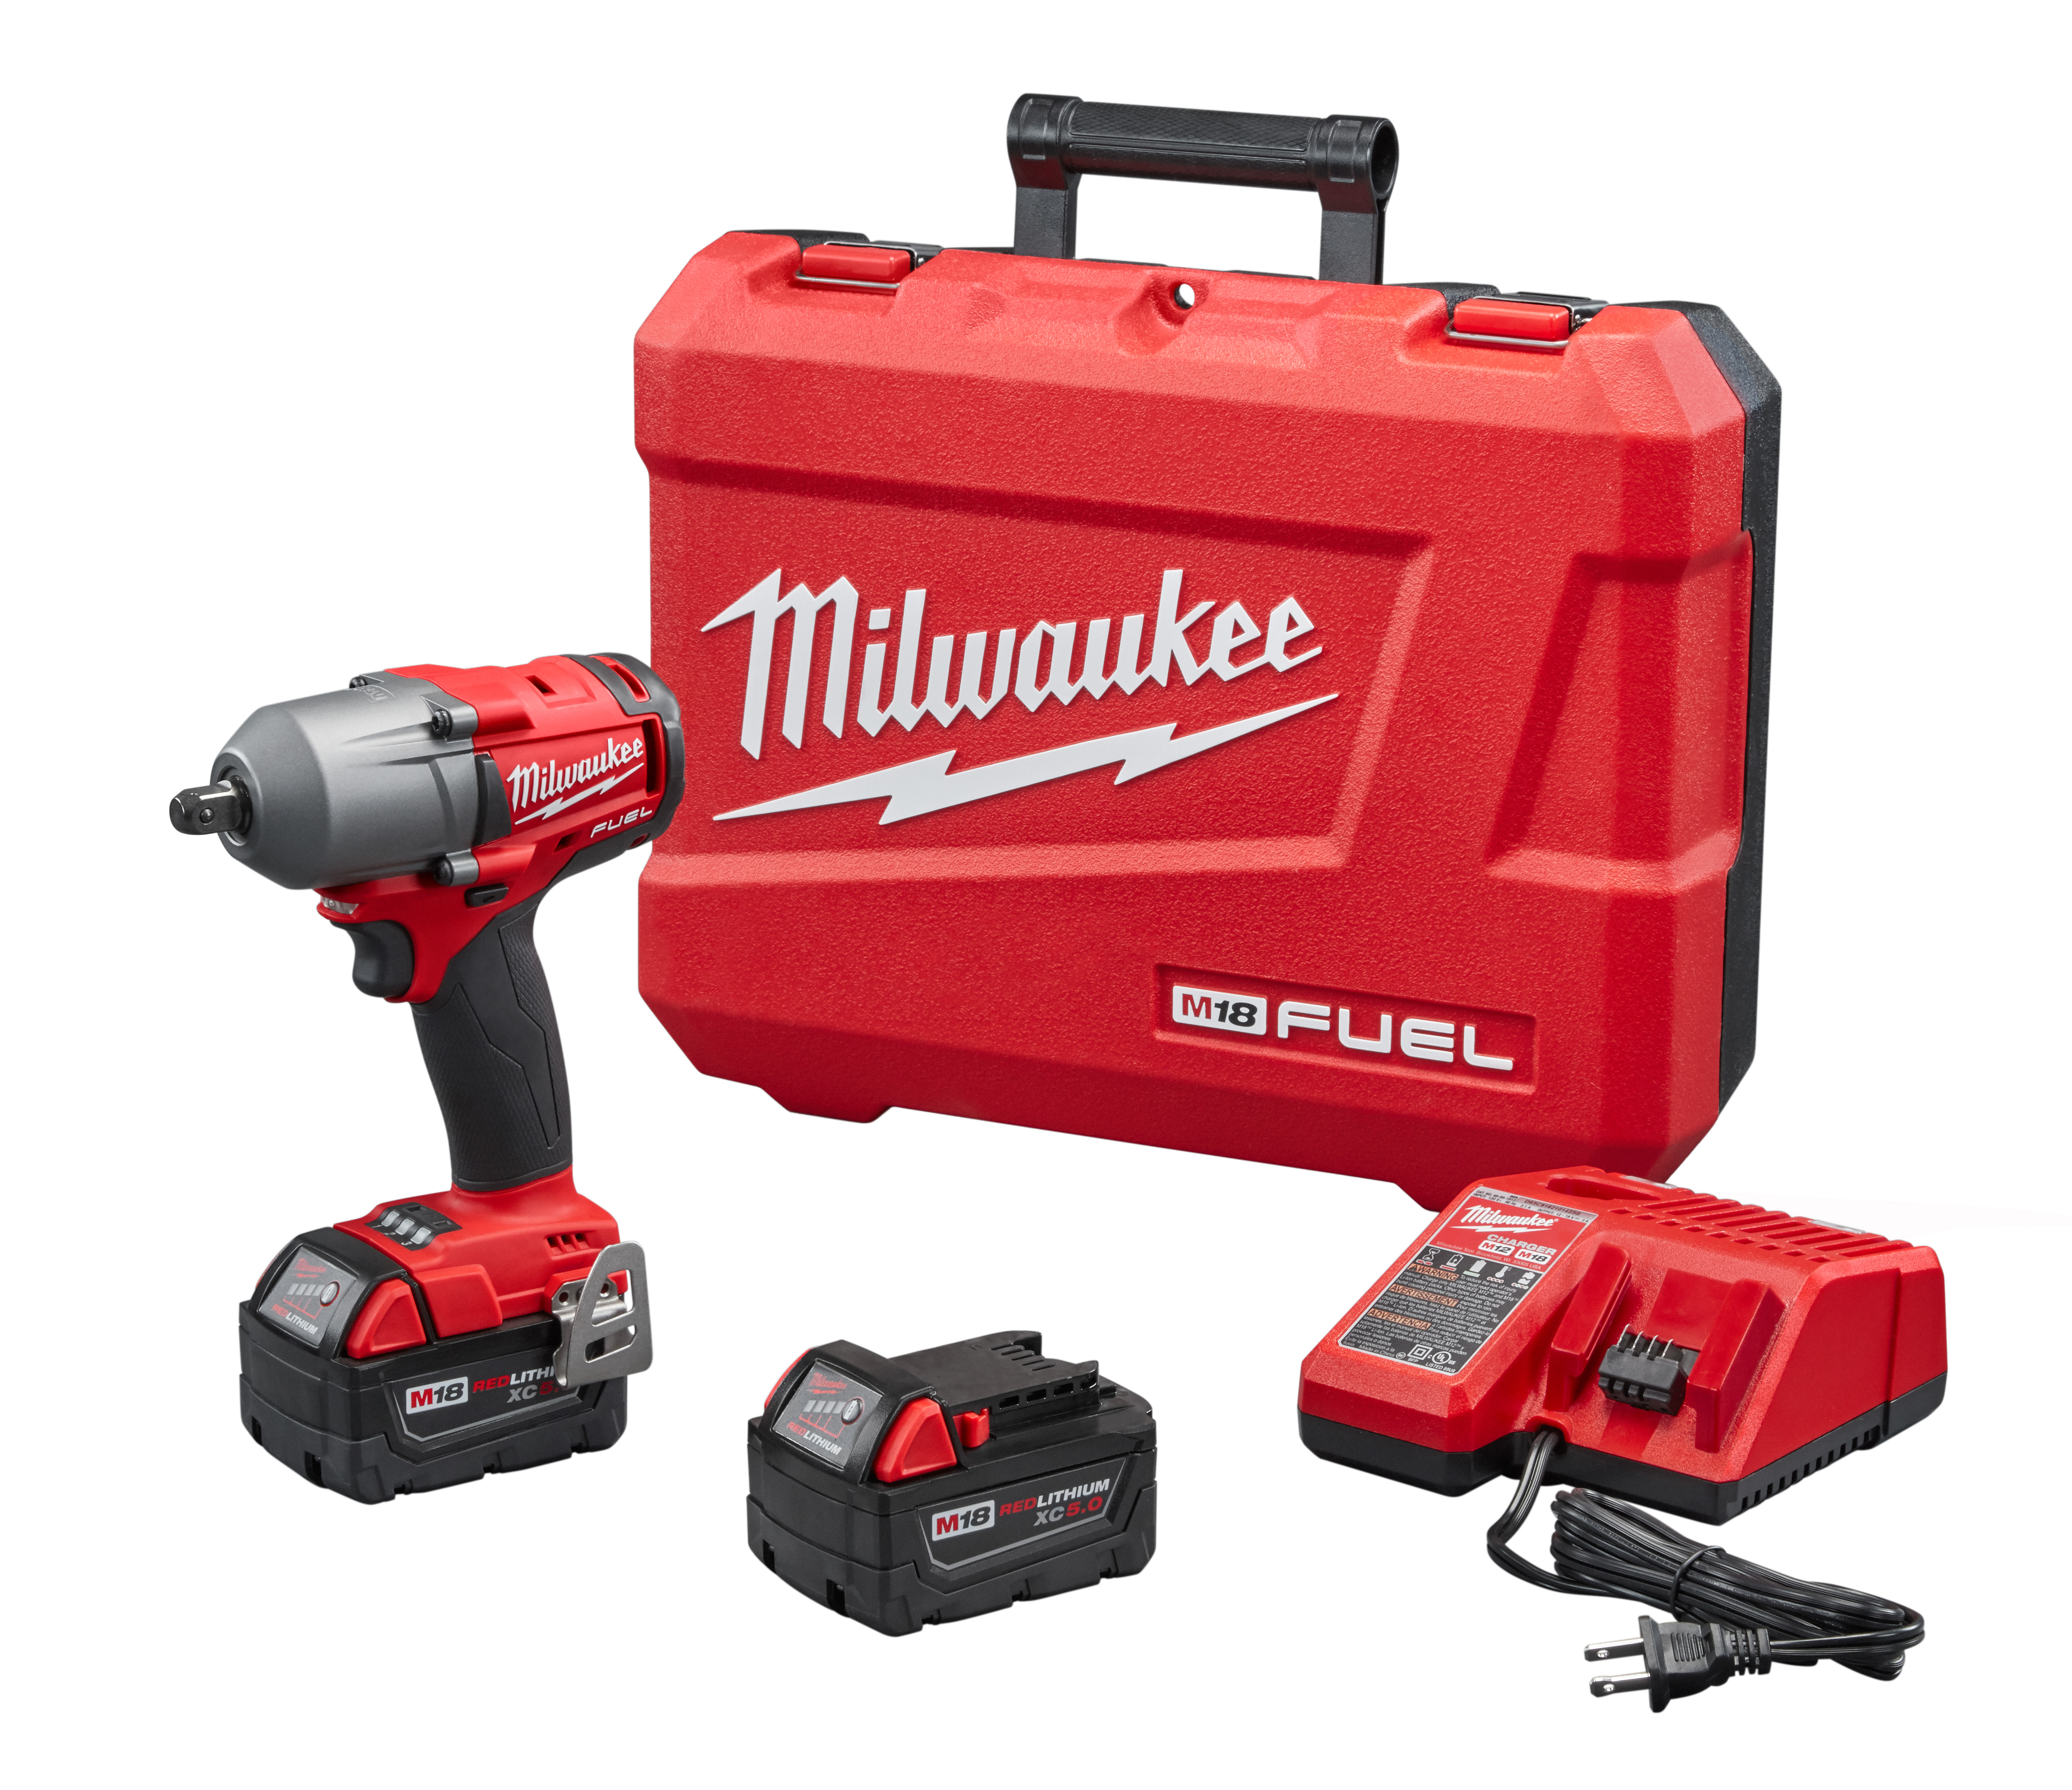 Milwaukee® M18™ FUEL™ 2860-22 Mid Torque Cordless Impact Wrench Kit, 1/2 in Straight Drive, 3000 bpm, 600 ft-lb Torque, 18 VDC, 6.77 in OAL